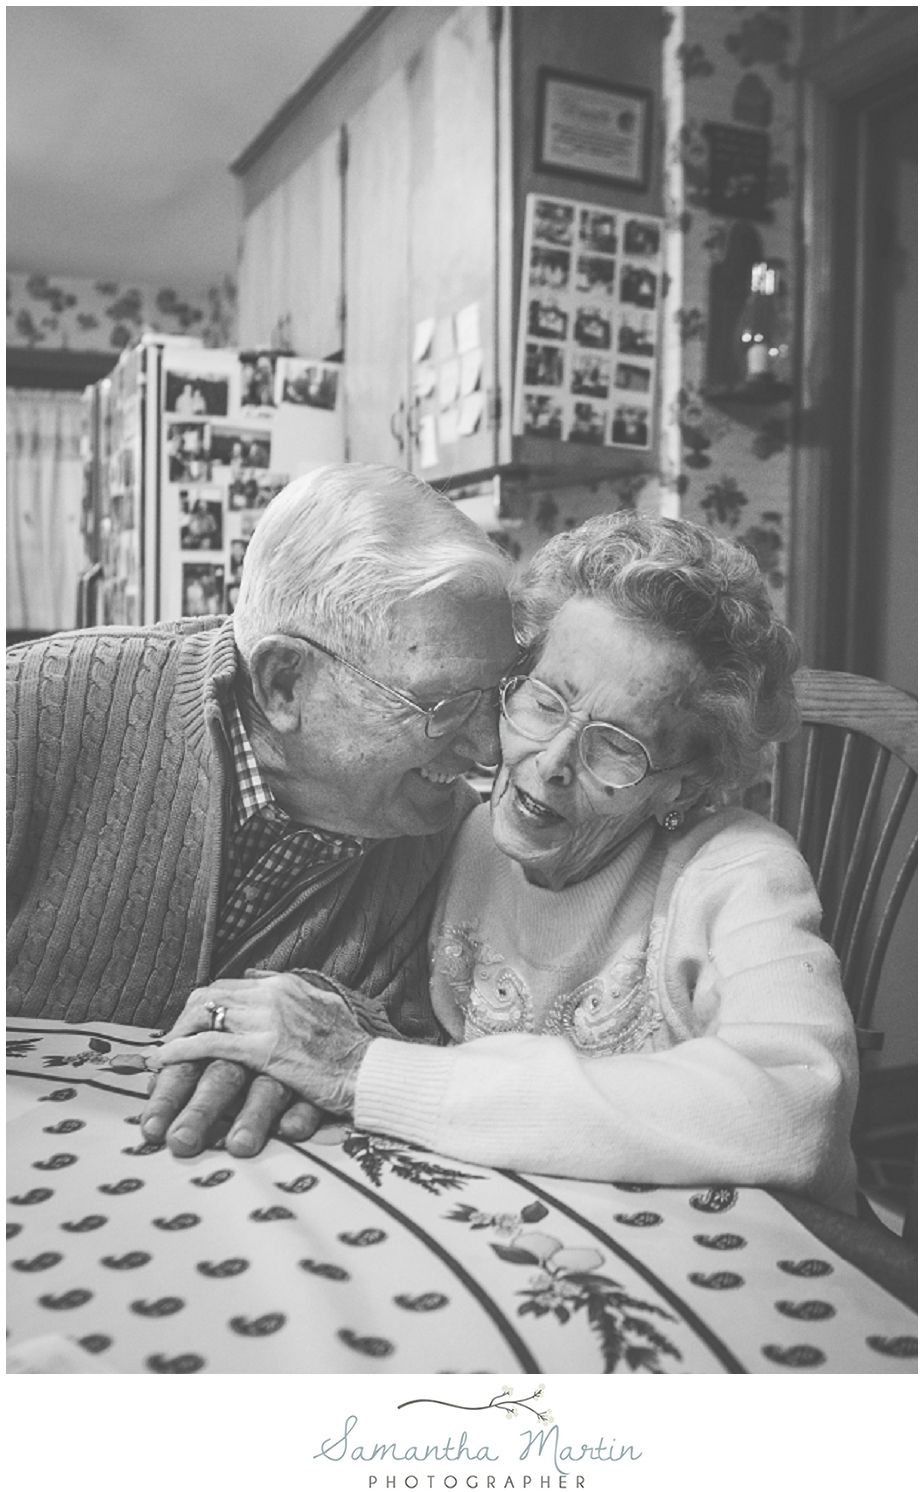 old love . stay married  3 true love old couple Συμβουλές Για Γάμους 2fc6aff9471